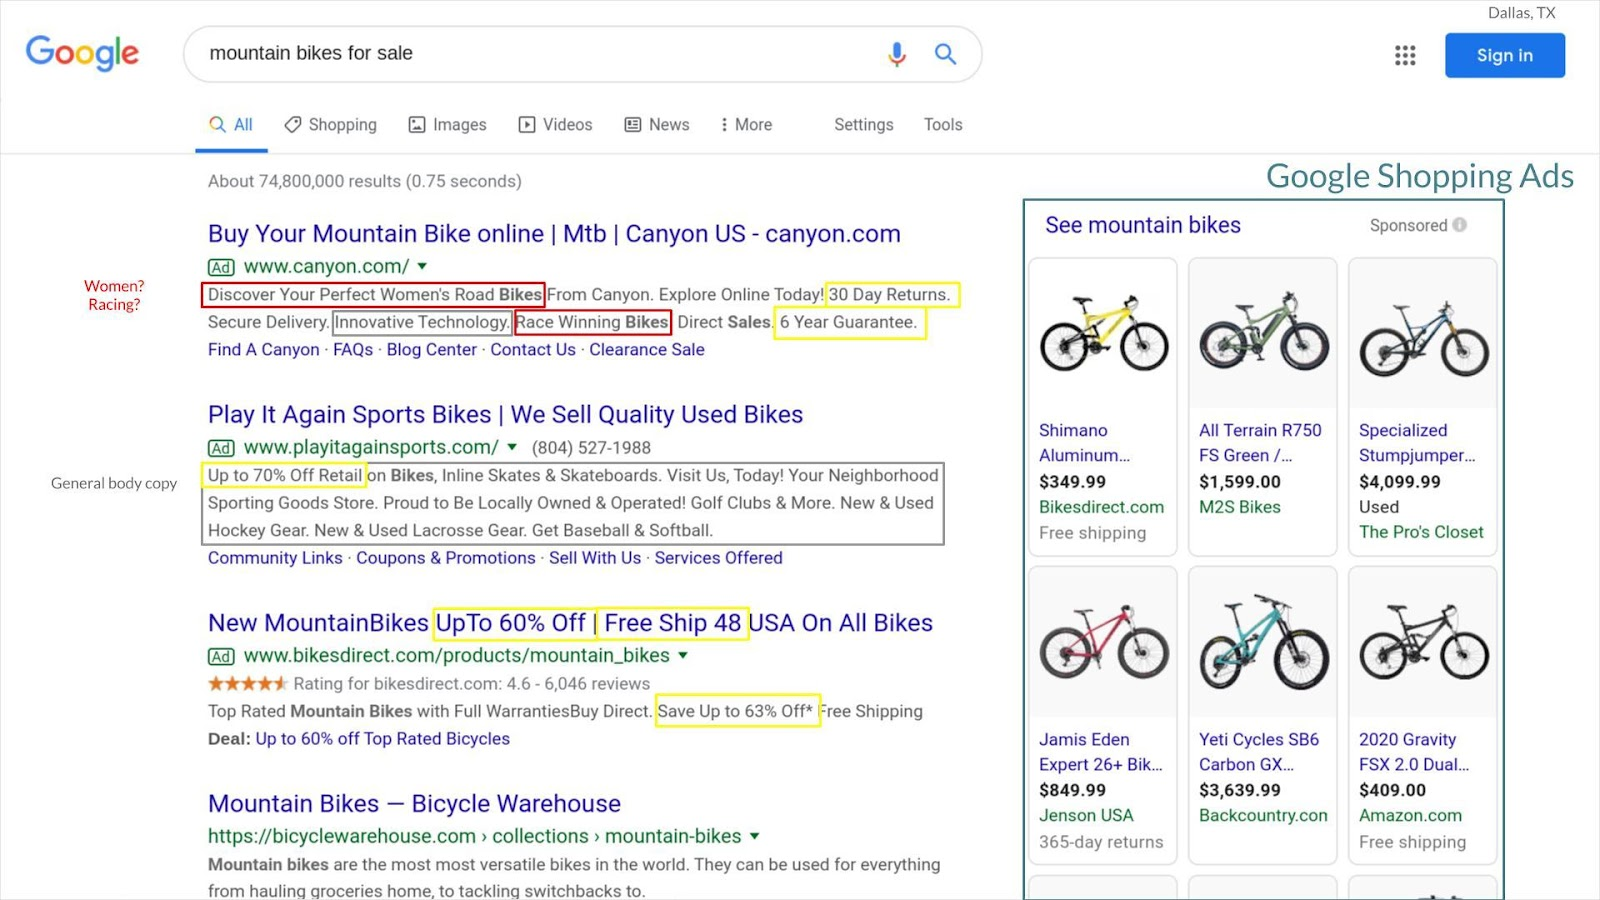 C:\Users\lenovo\Documents\ACT Marketing\Downloads from Slides\Blog version M122 - How To Setup Google Ads Campaign (1).jpg